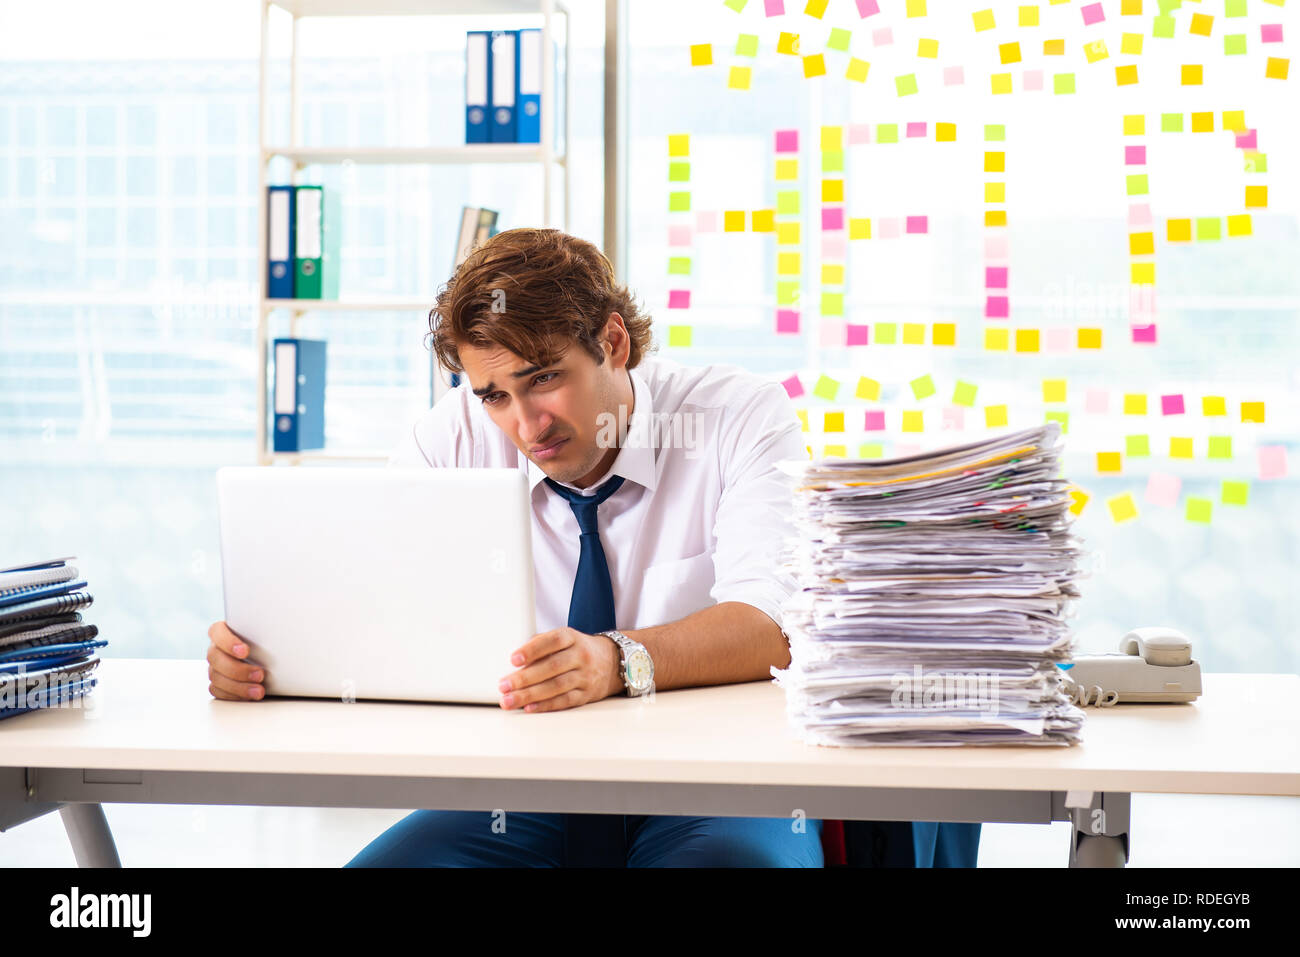 Busy businessman working in the office - Stock Image